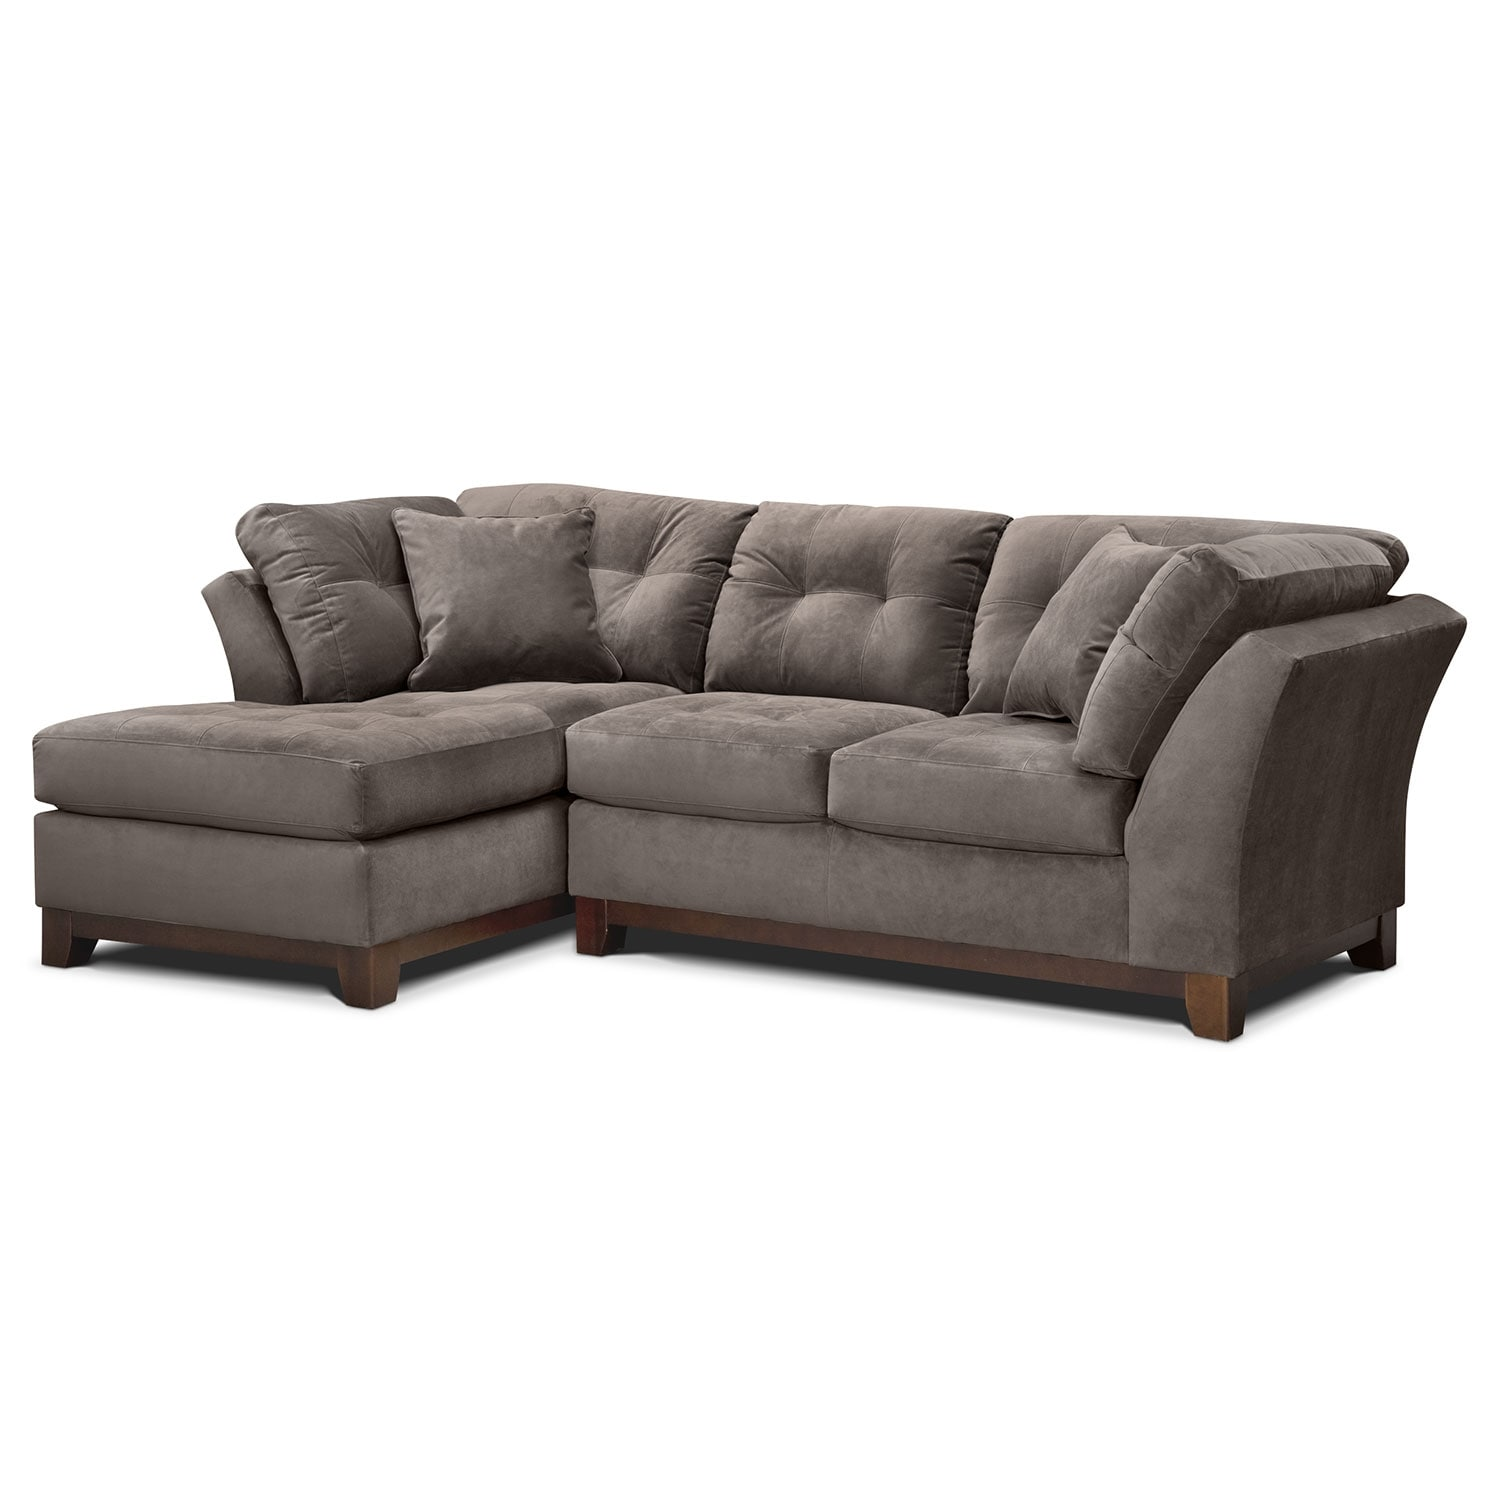 Solace 2-Piece Left-Facing Chaise Sectional - Gray